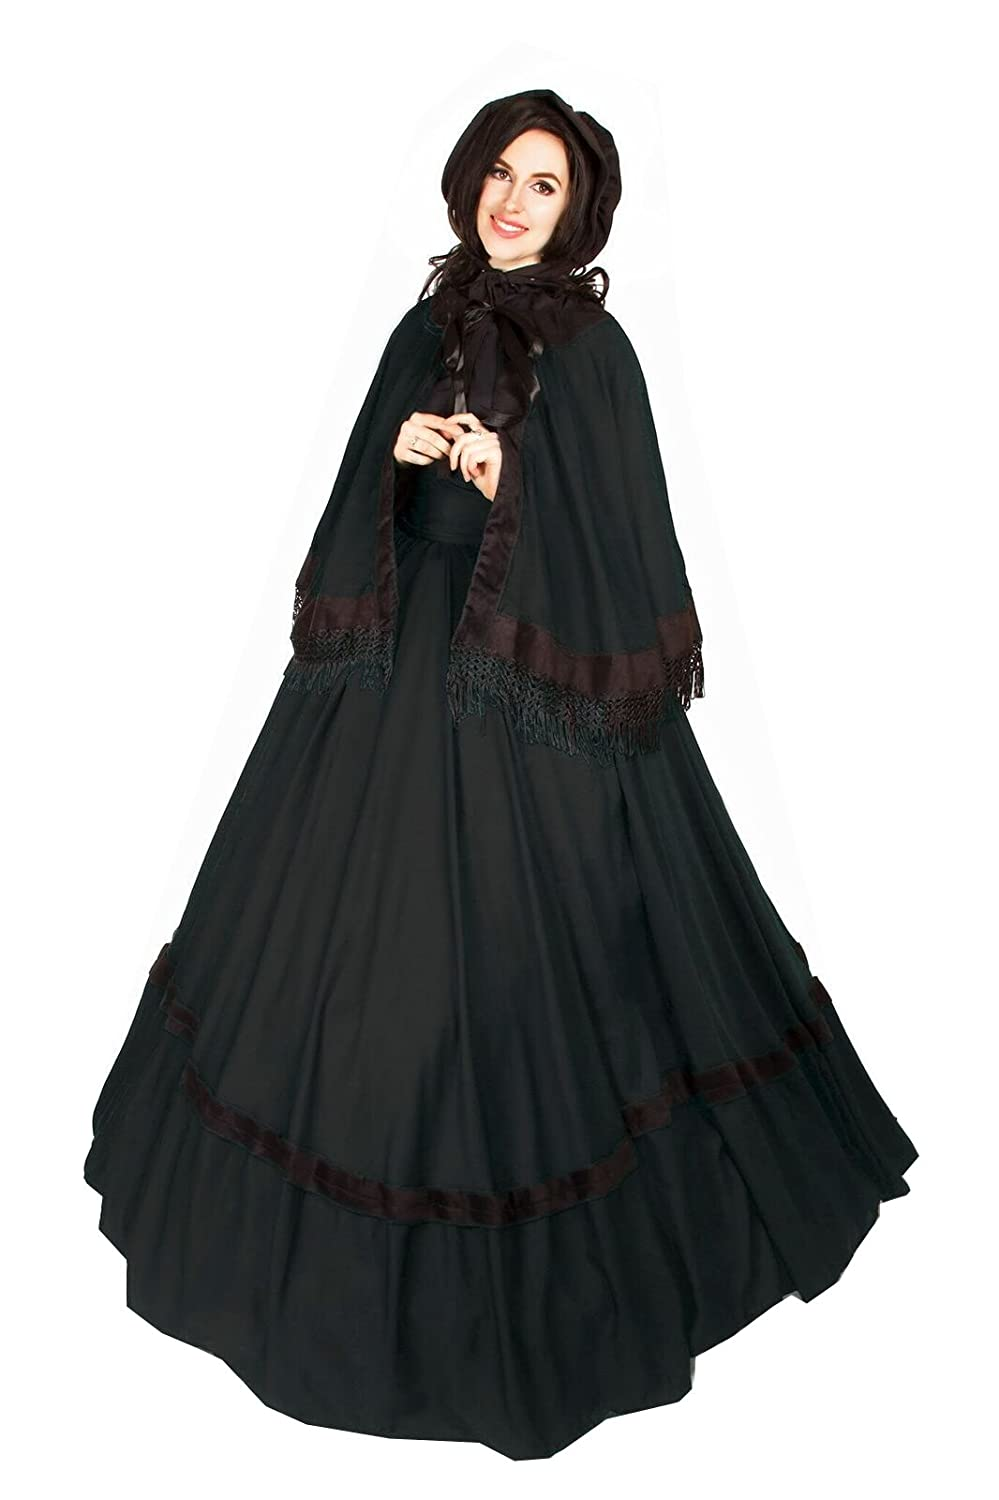 Old Fashioned Dresses | Old Dress Styles Reminisce Civil War reenactment Dickens Faire Victorian 3 Piece Cape Sash Dress $49.99 AT vintagedancer.com